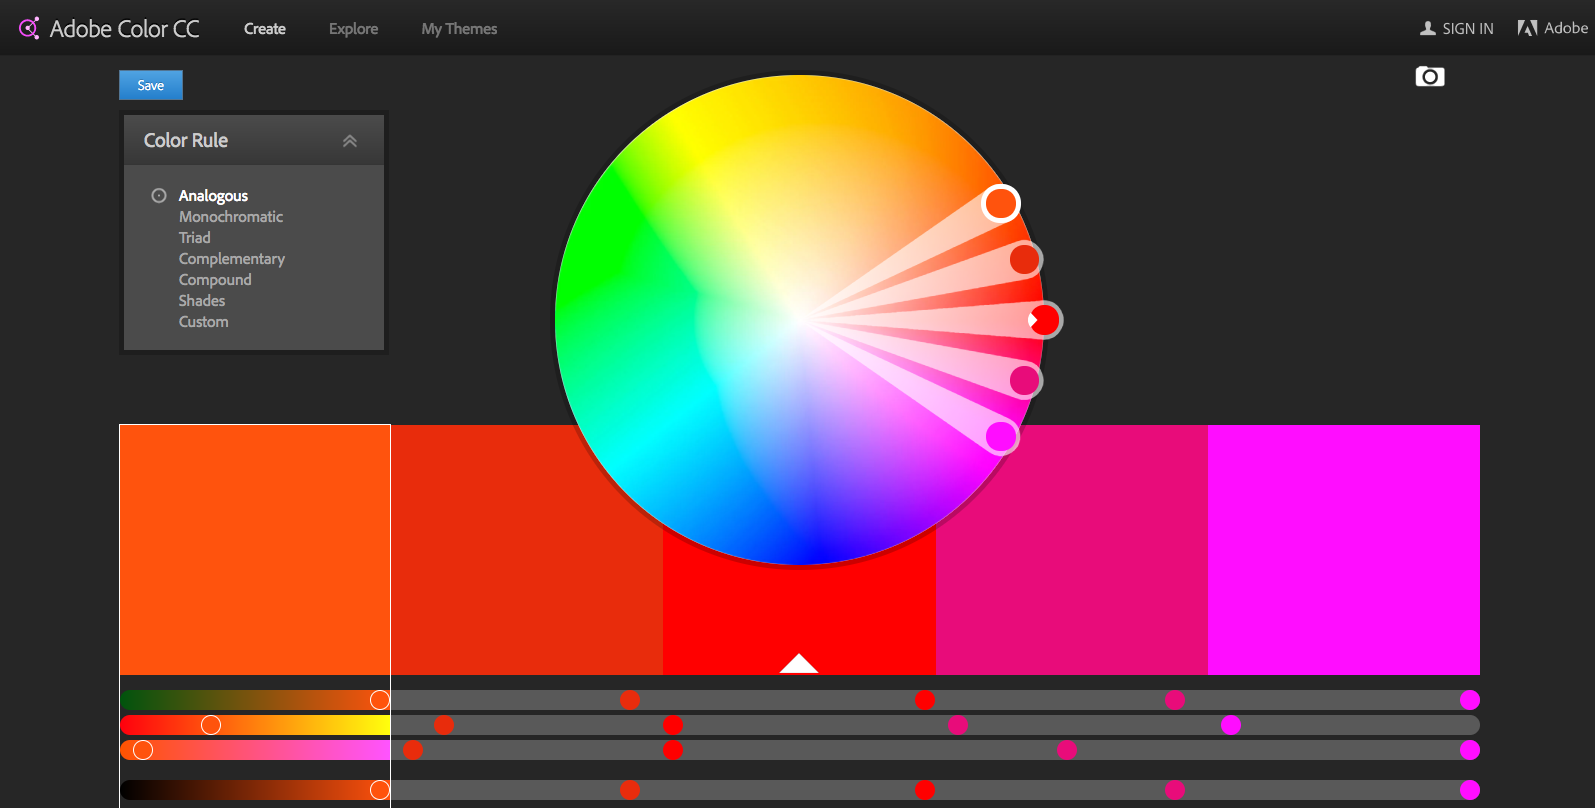 Color theory online games - 7 Adobe Color Cc Color Wheel